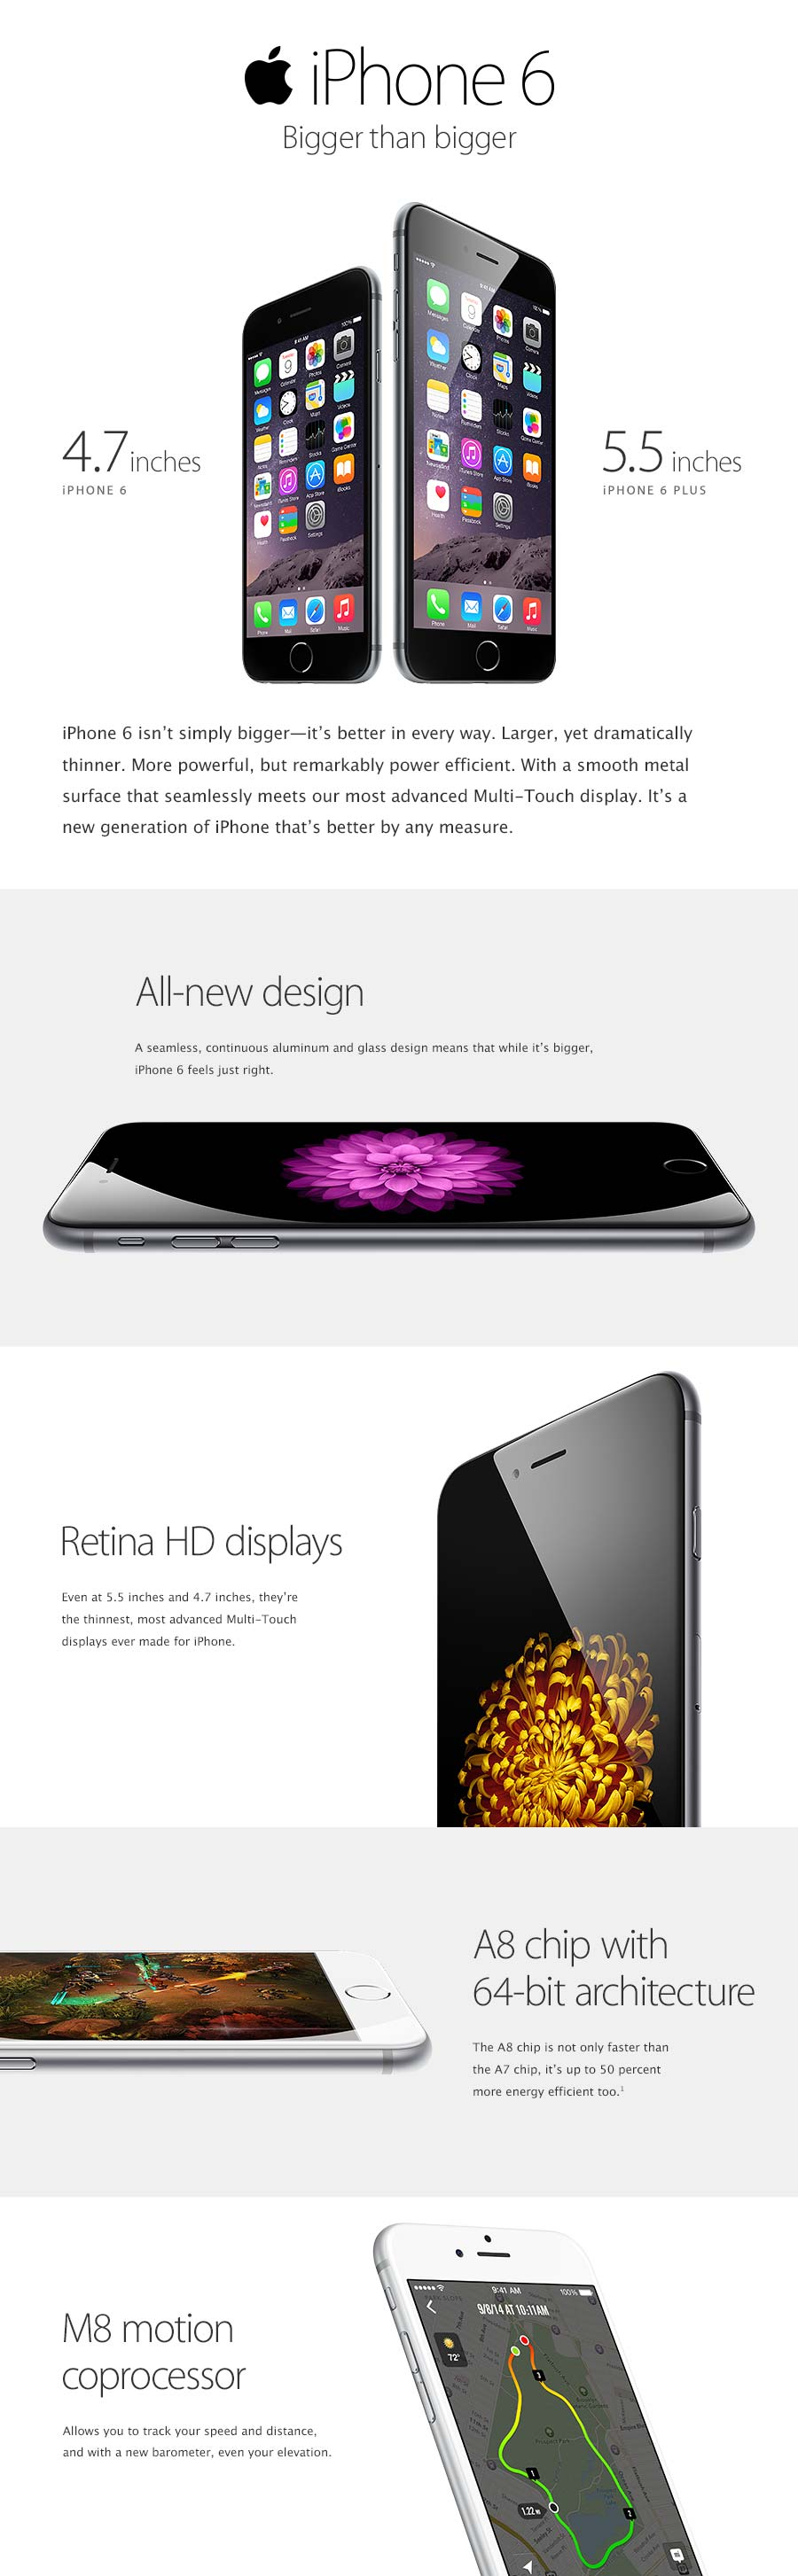 consumer-fullimage-iPhone6-productpage